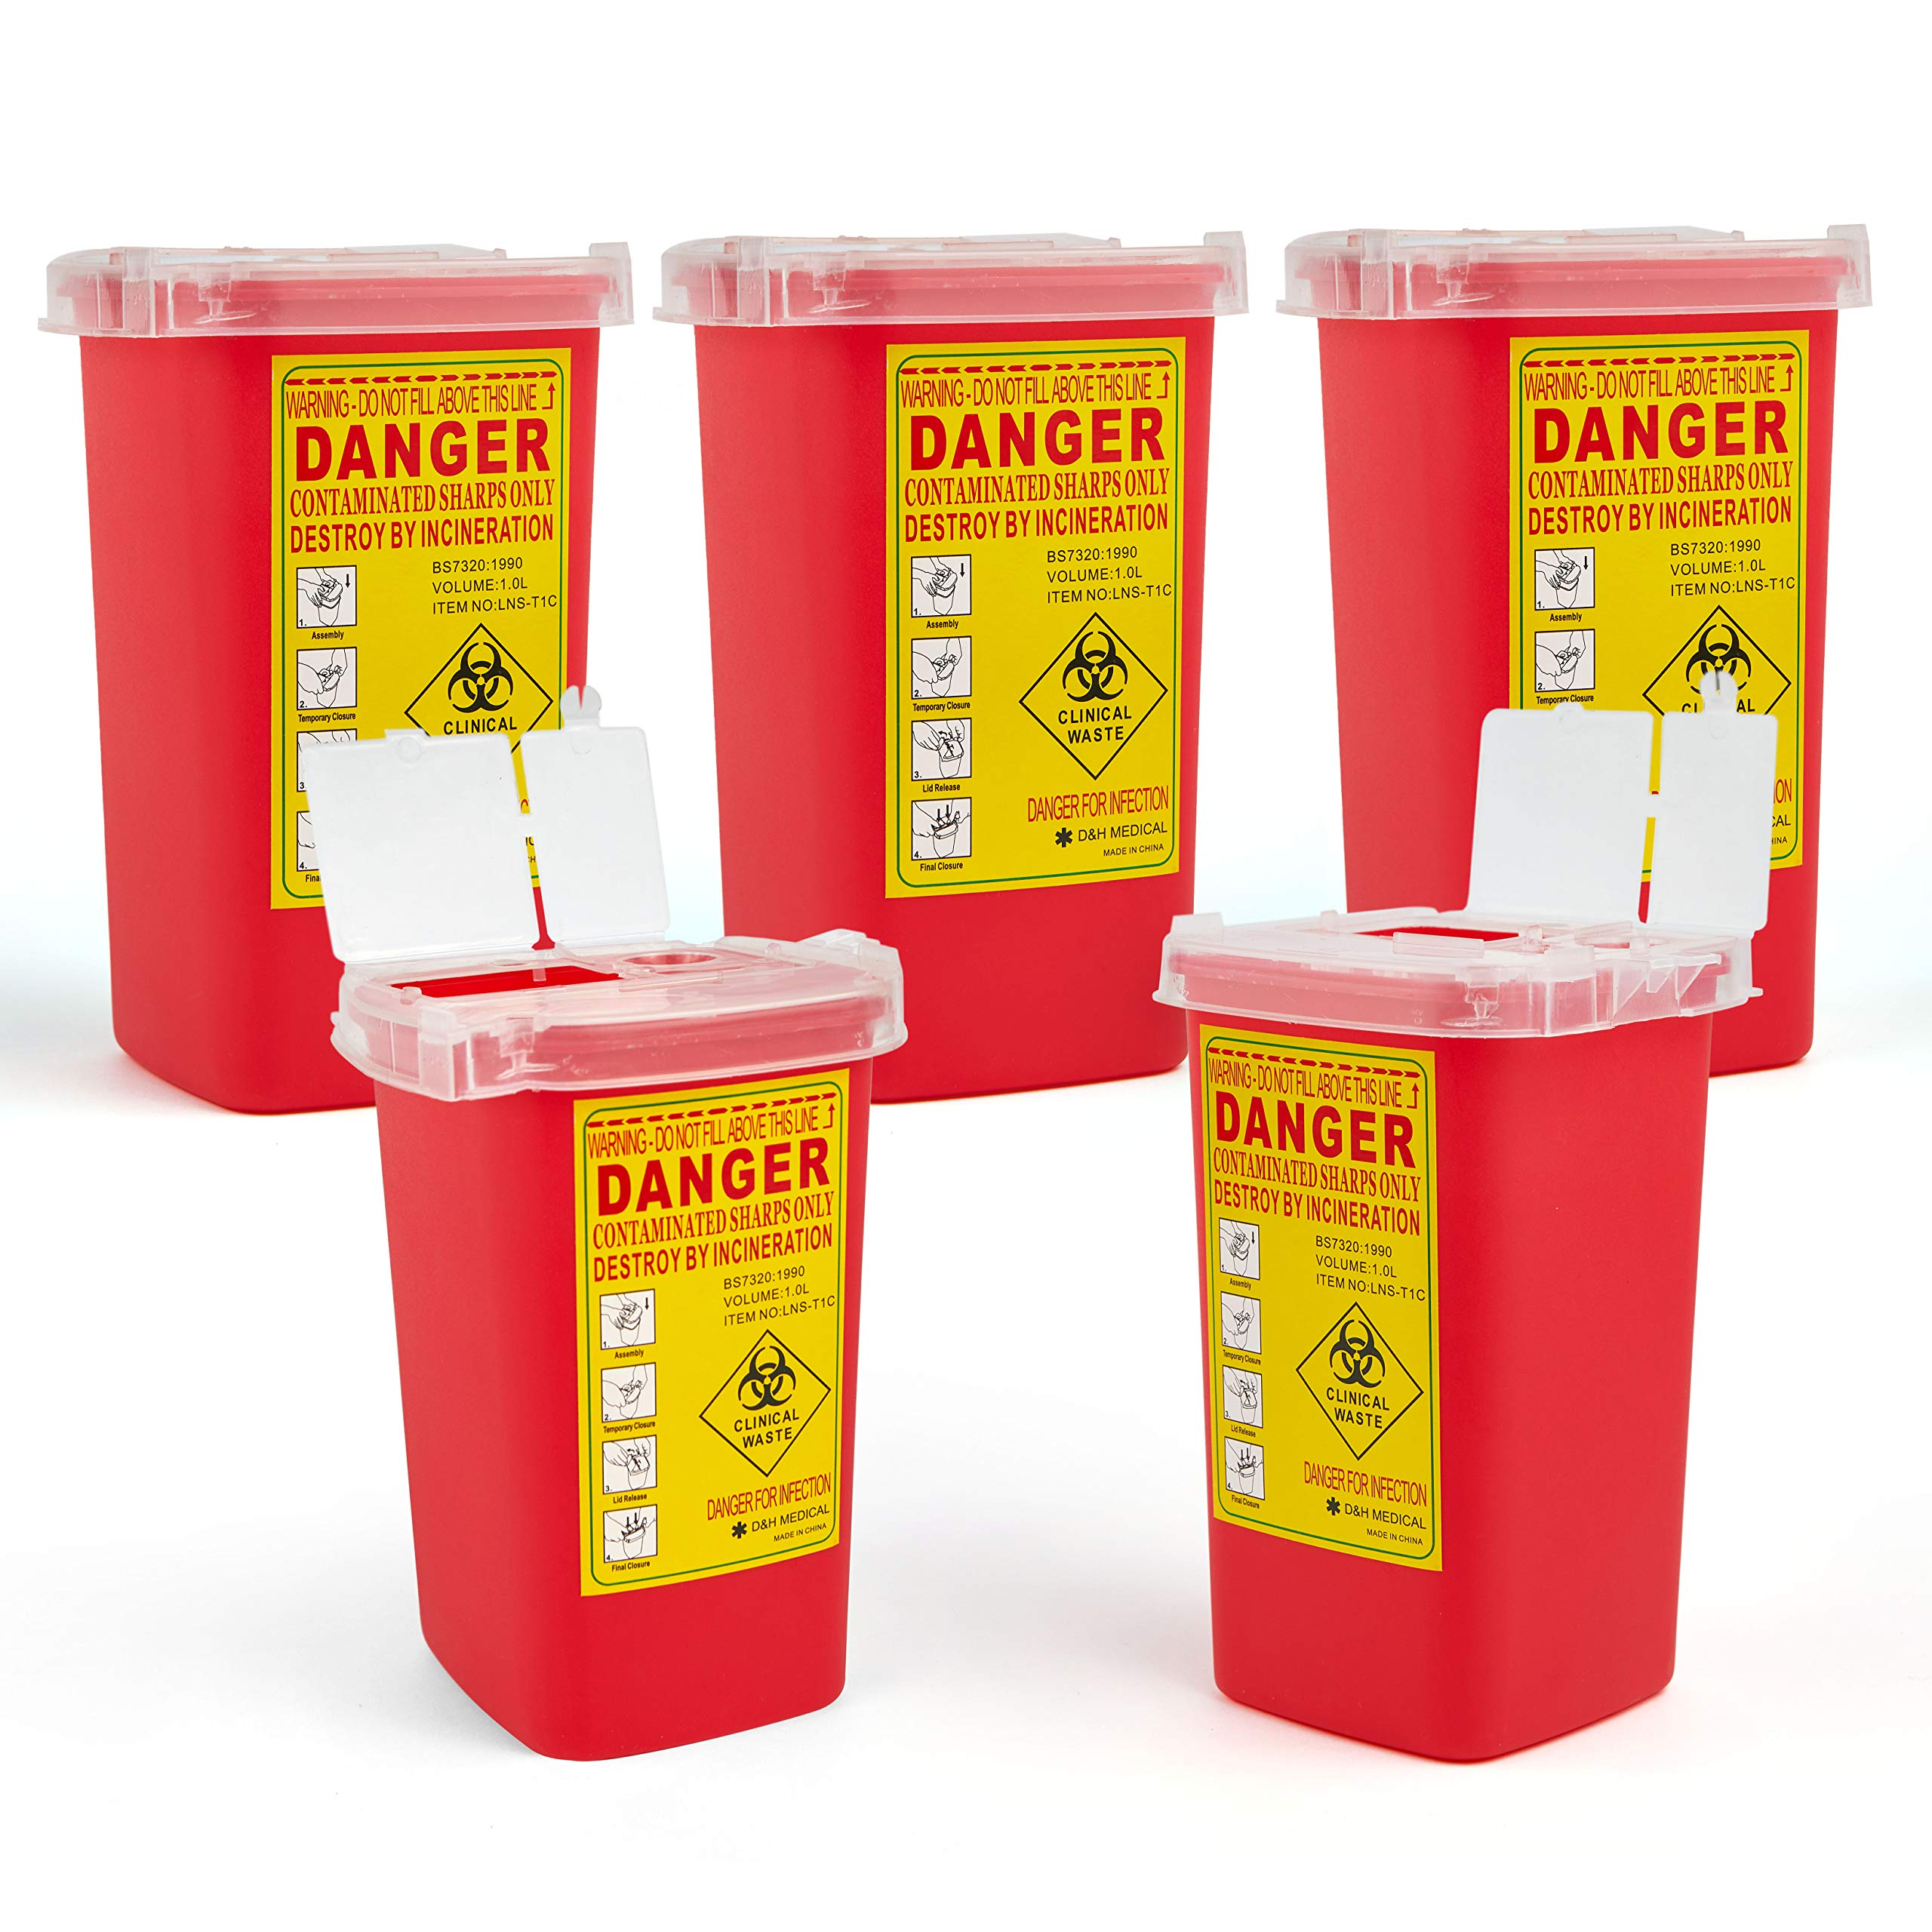 D & H Medical Sharps Disposal Container: 5-Pack Biohazard Needle Container 1-Quart Size| FDA-Approved, Safe Lock Containers for Disposal of Syringes, Blades & Lancets| Top Tattoo Supplies Disposal Kit